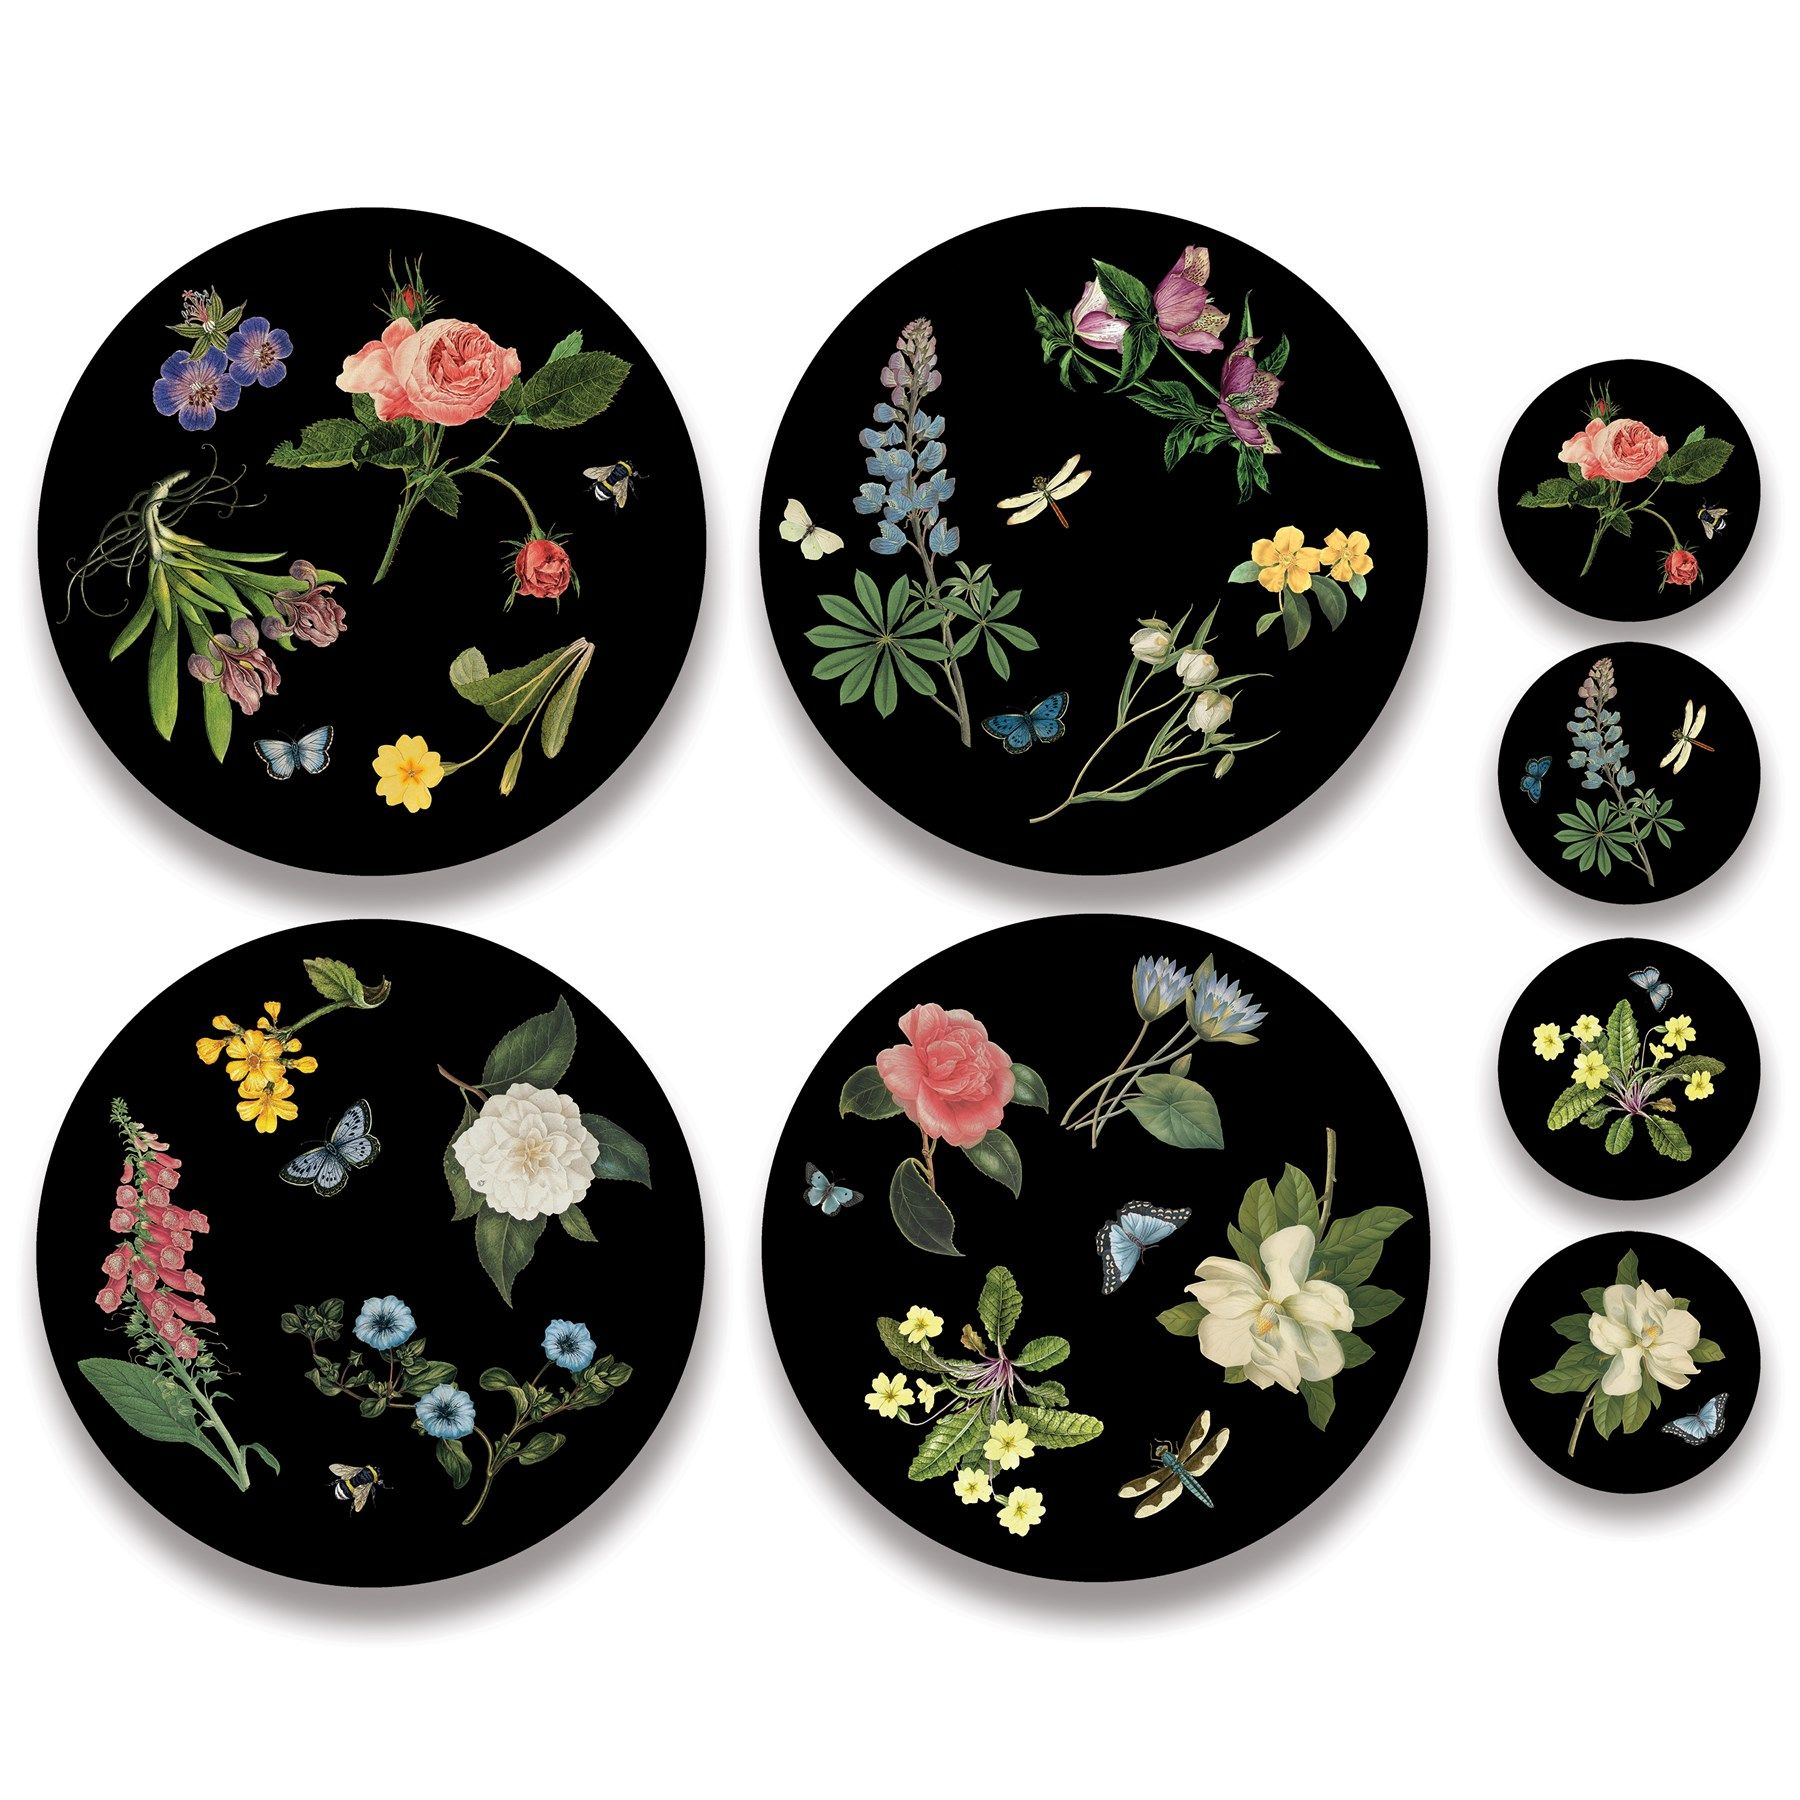 Placemats Coasters Eucalyptus Mats With Baked Melamine Coating Are Heat Proof To 320 Degrees Fahrenheit So Can Be Us Placemats Plates On Wall Plate Wall Decor